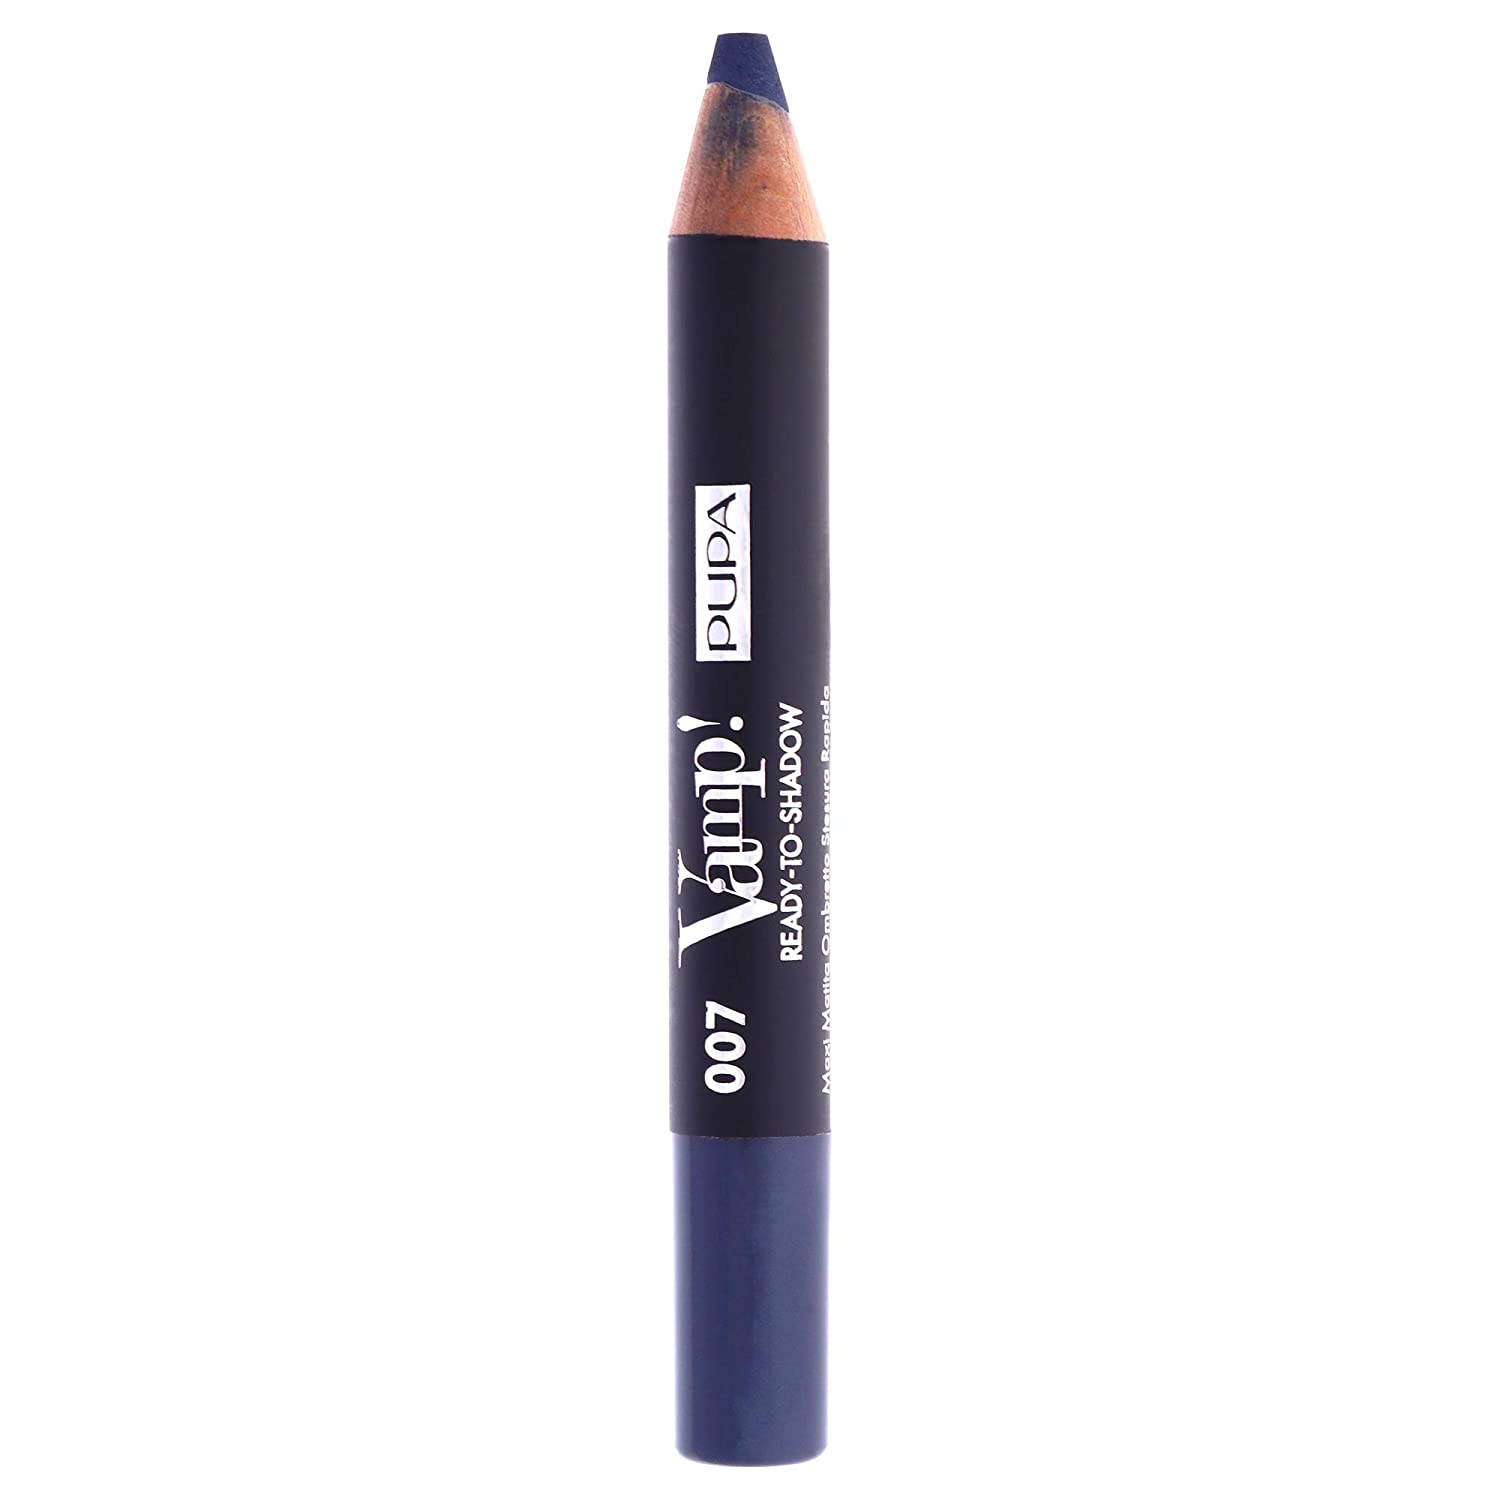 Pupa Milano Vamp! Ready To Shadow – Eyeshadow Maxi Pencil – Quick Application – Instant Blendability – Velvety Texture with a Powder Feel – 007 Smoky Blue – 0.04 Oz